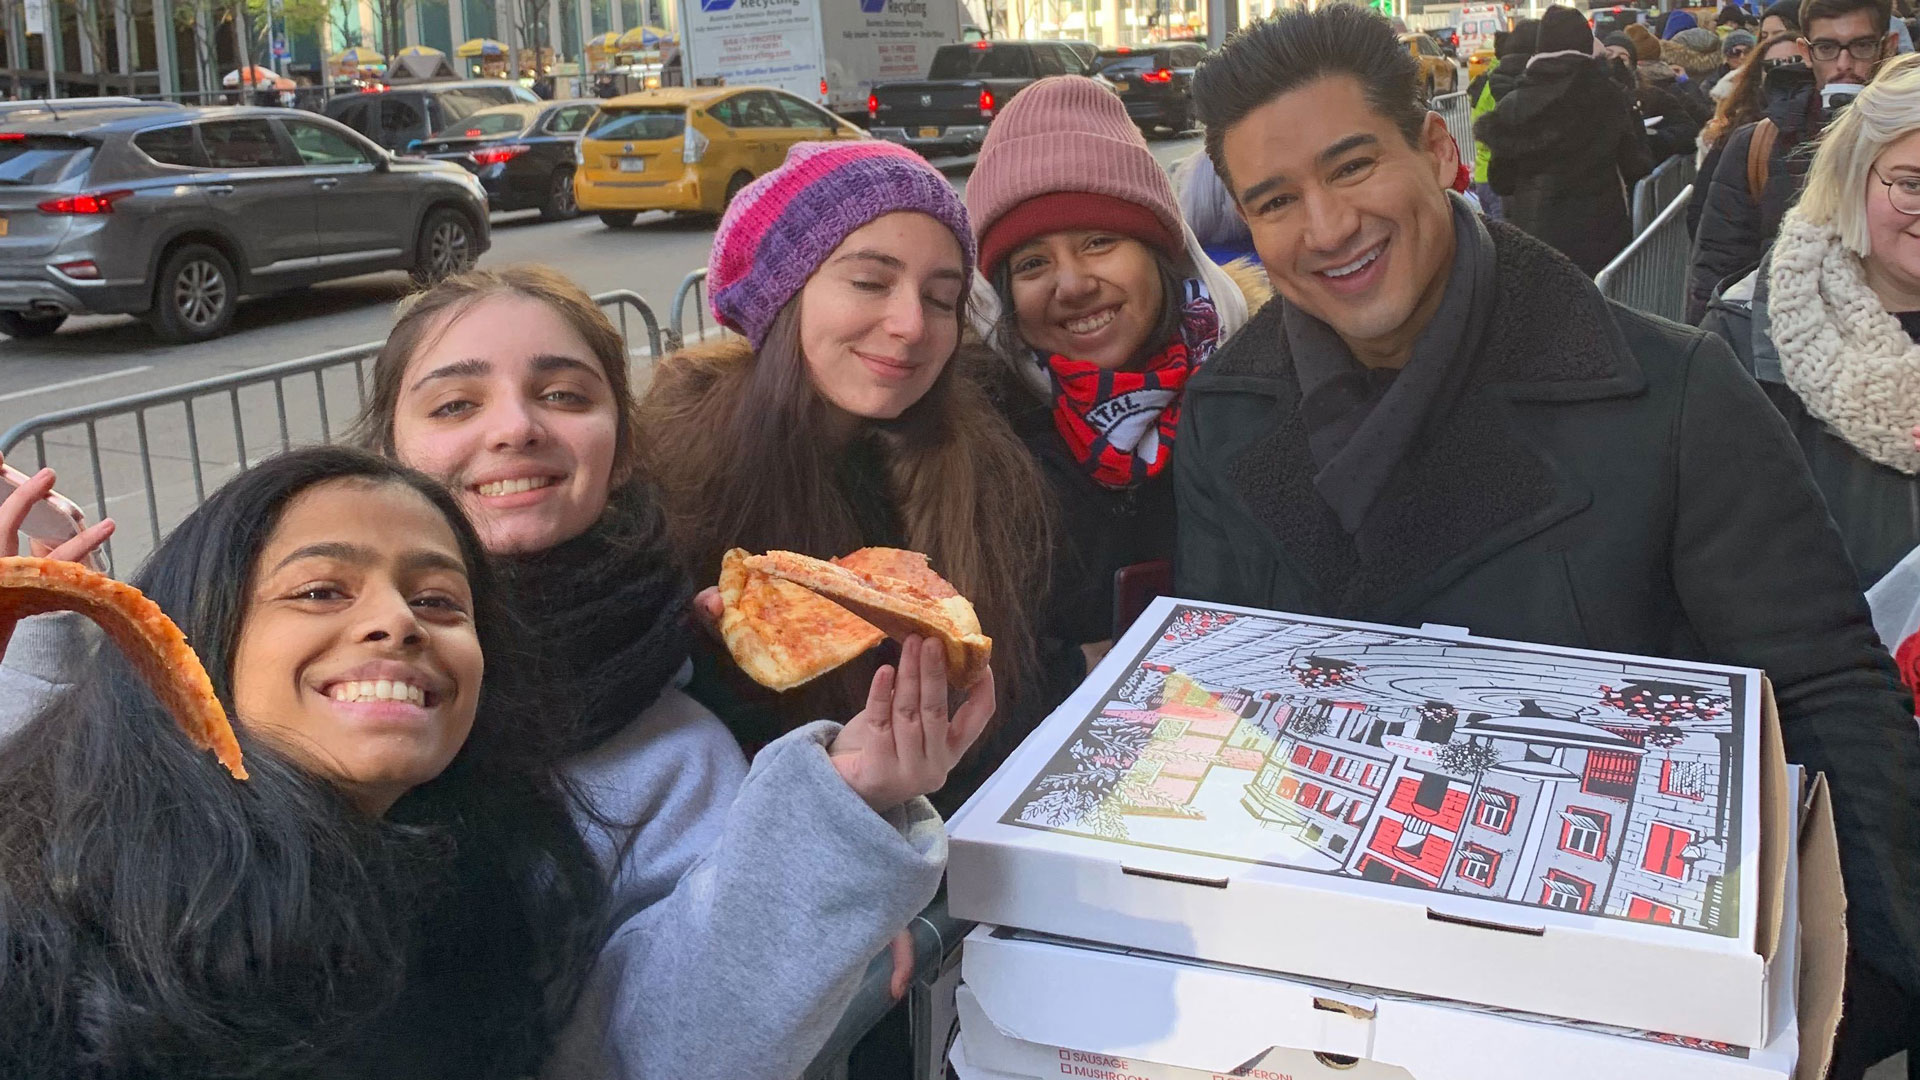 Mario Lopez Surprises Harry Styles Fans Camping Out For 'SNL' Tickets With Pizza! (EXCLUSIVE) - Access